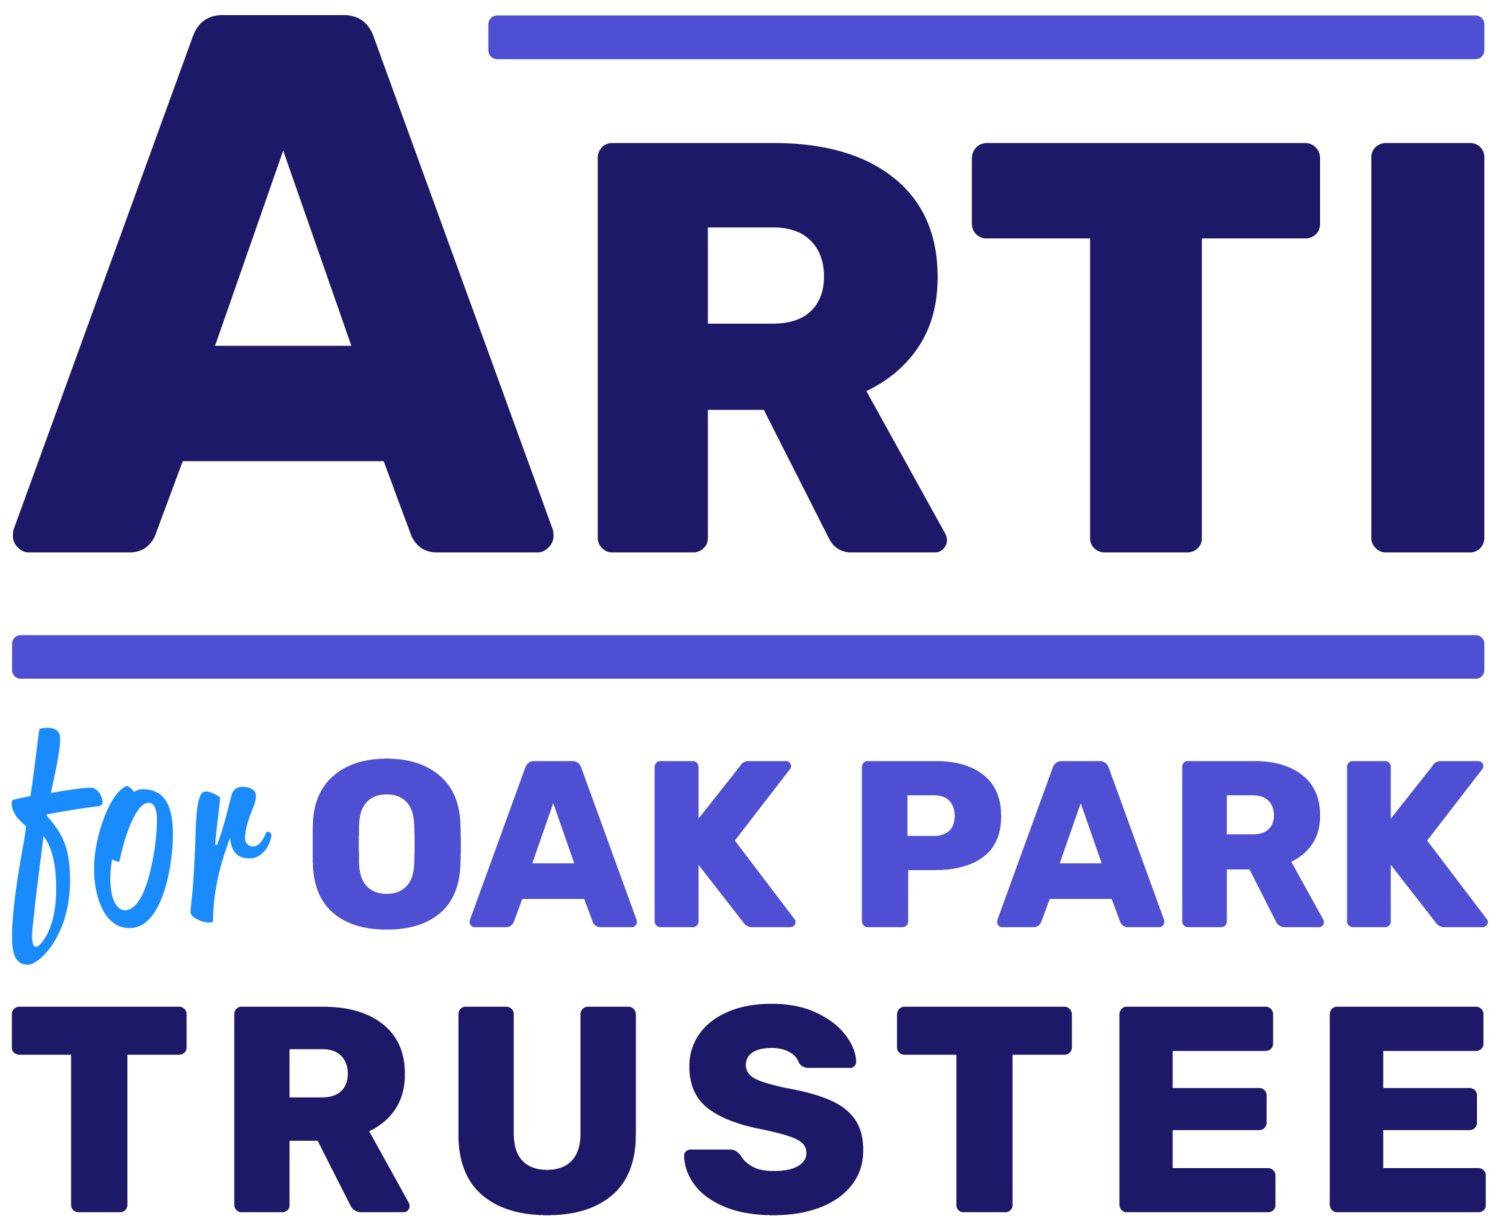 Arti for Oak Park